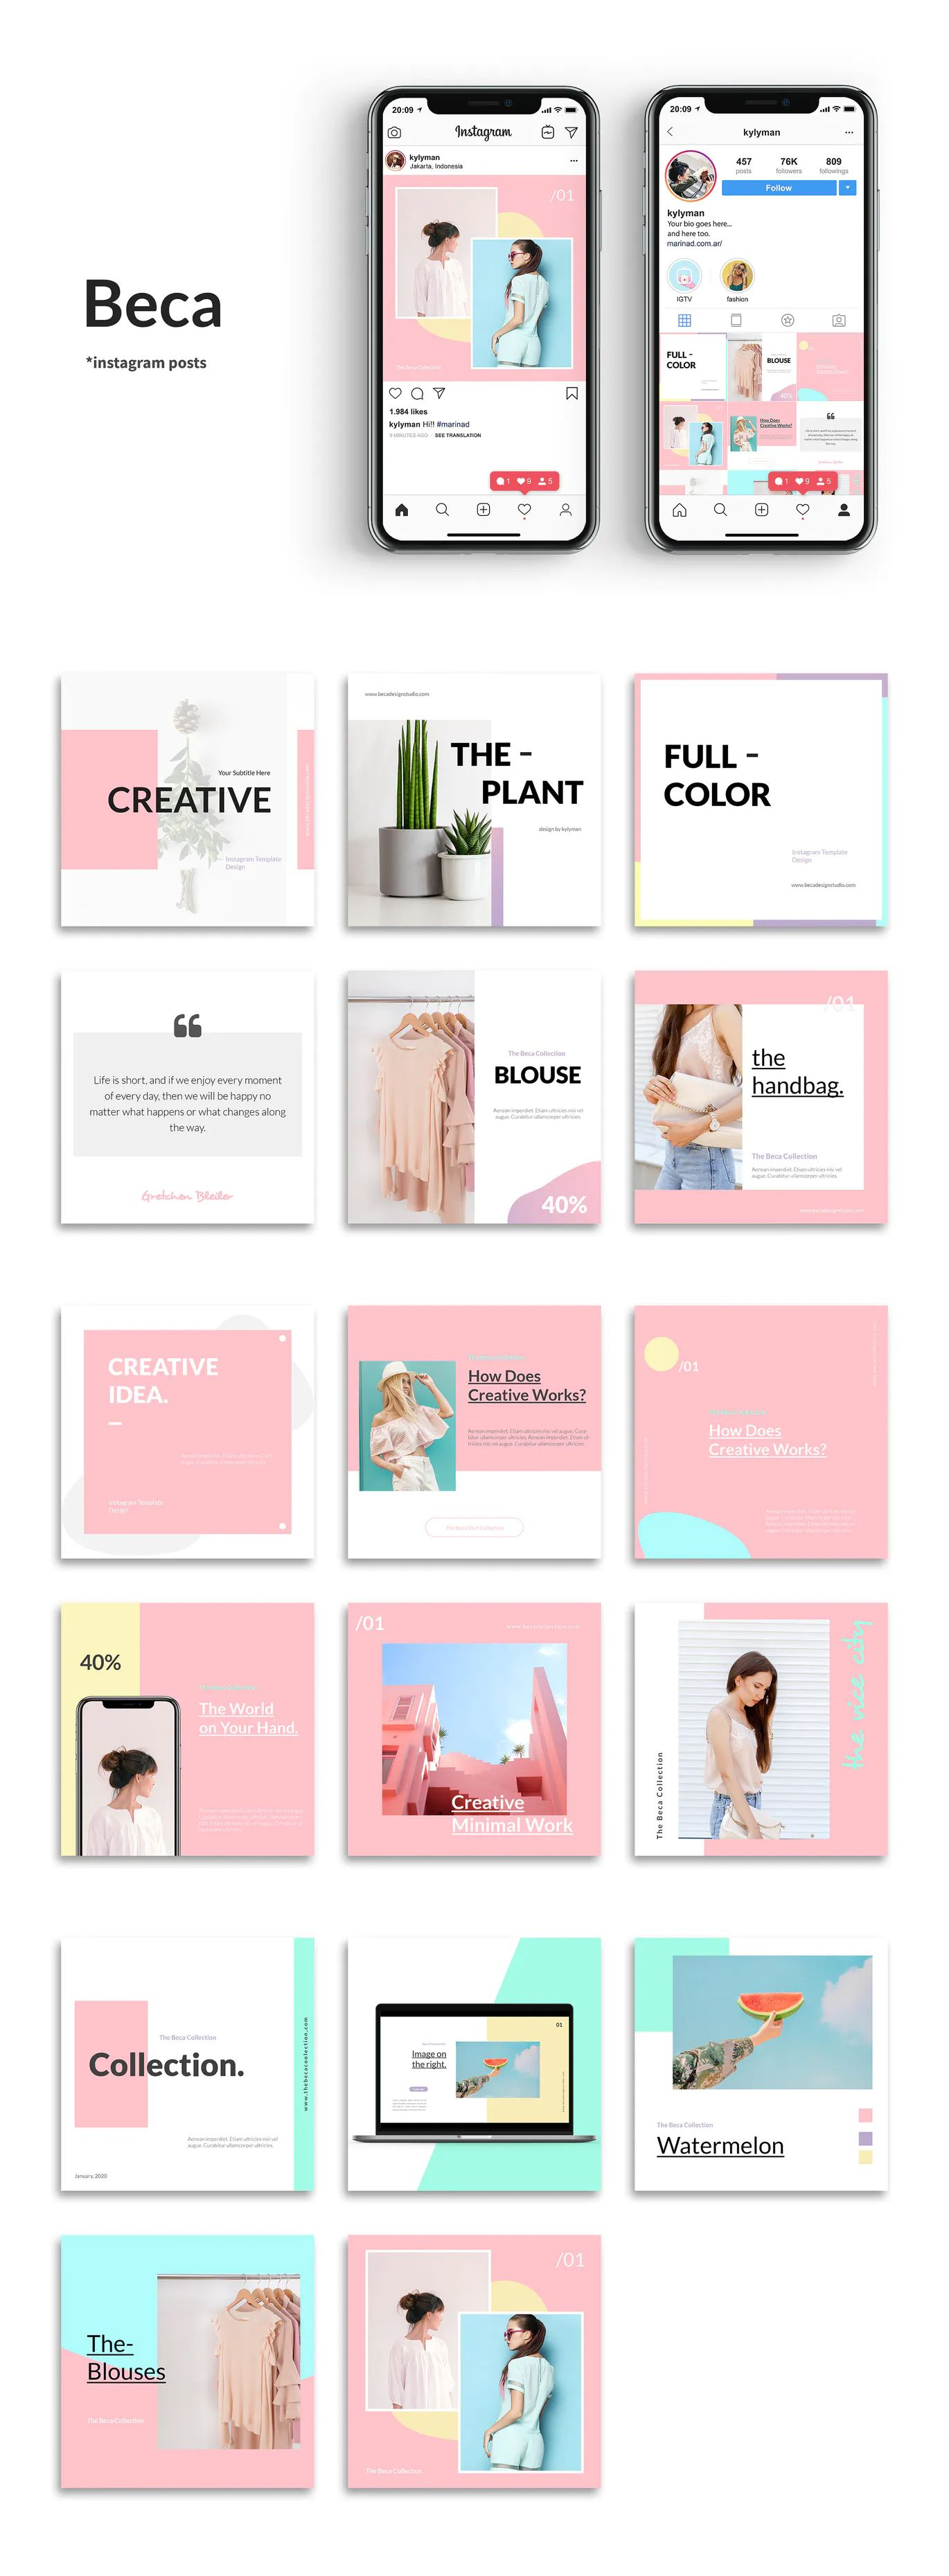 Download Instagram Grid Mockup Psd Yellowimages